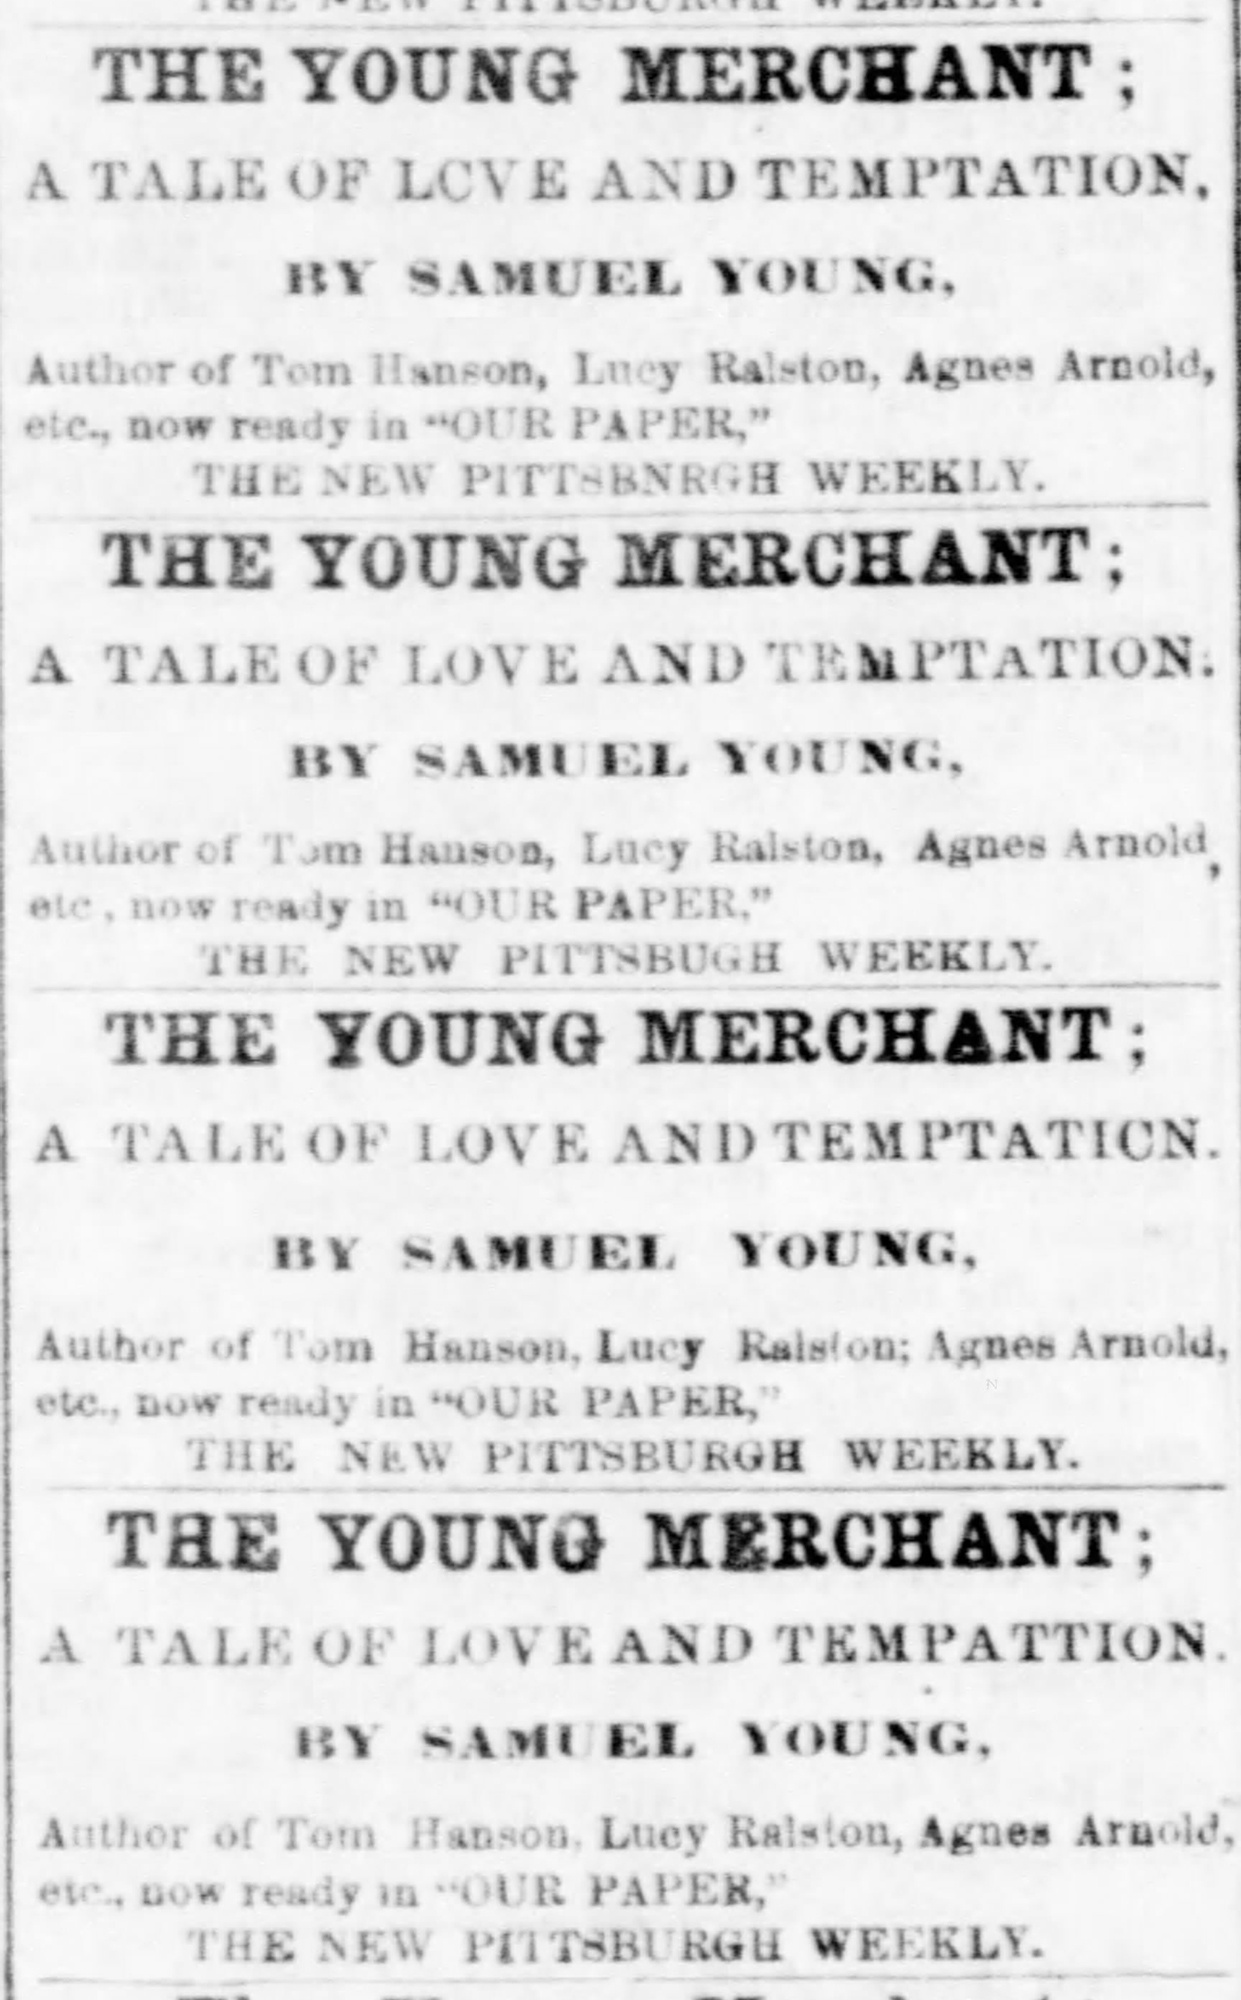 Column announcement of more Sam Young stories, 1861. Pittsburgh Daily Post, April 4, 1861.